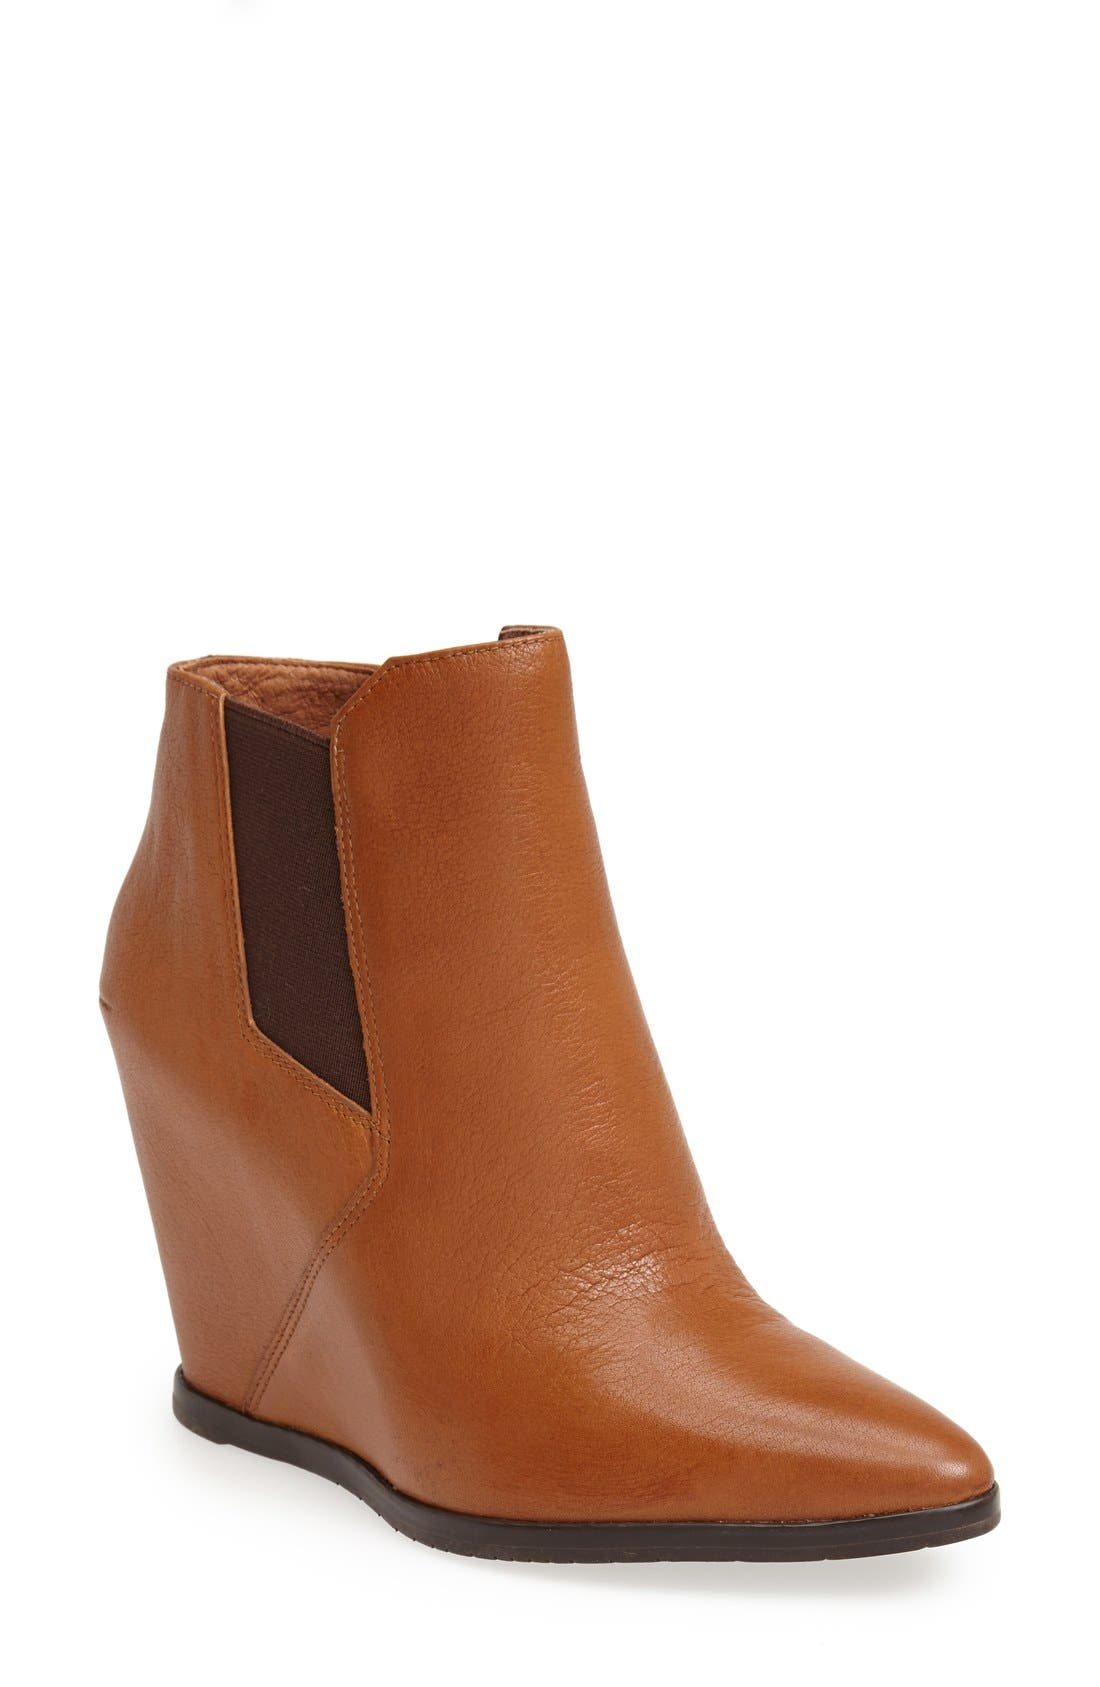 Alternate Image 1 Selected - Kenneth Cole New York 'Sloane' Leather Wedge Bootie (Women)